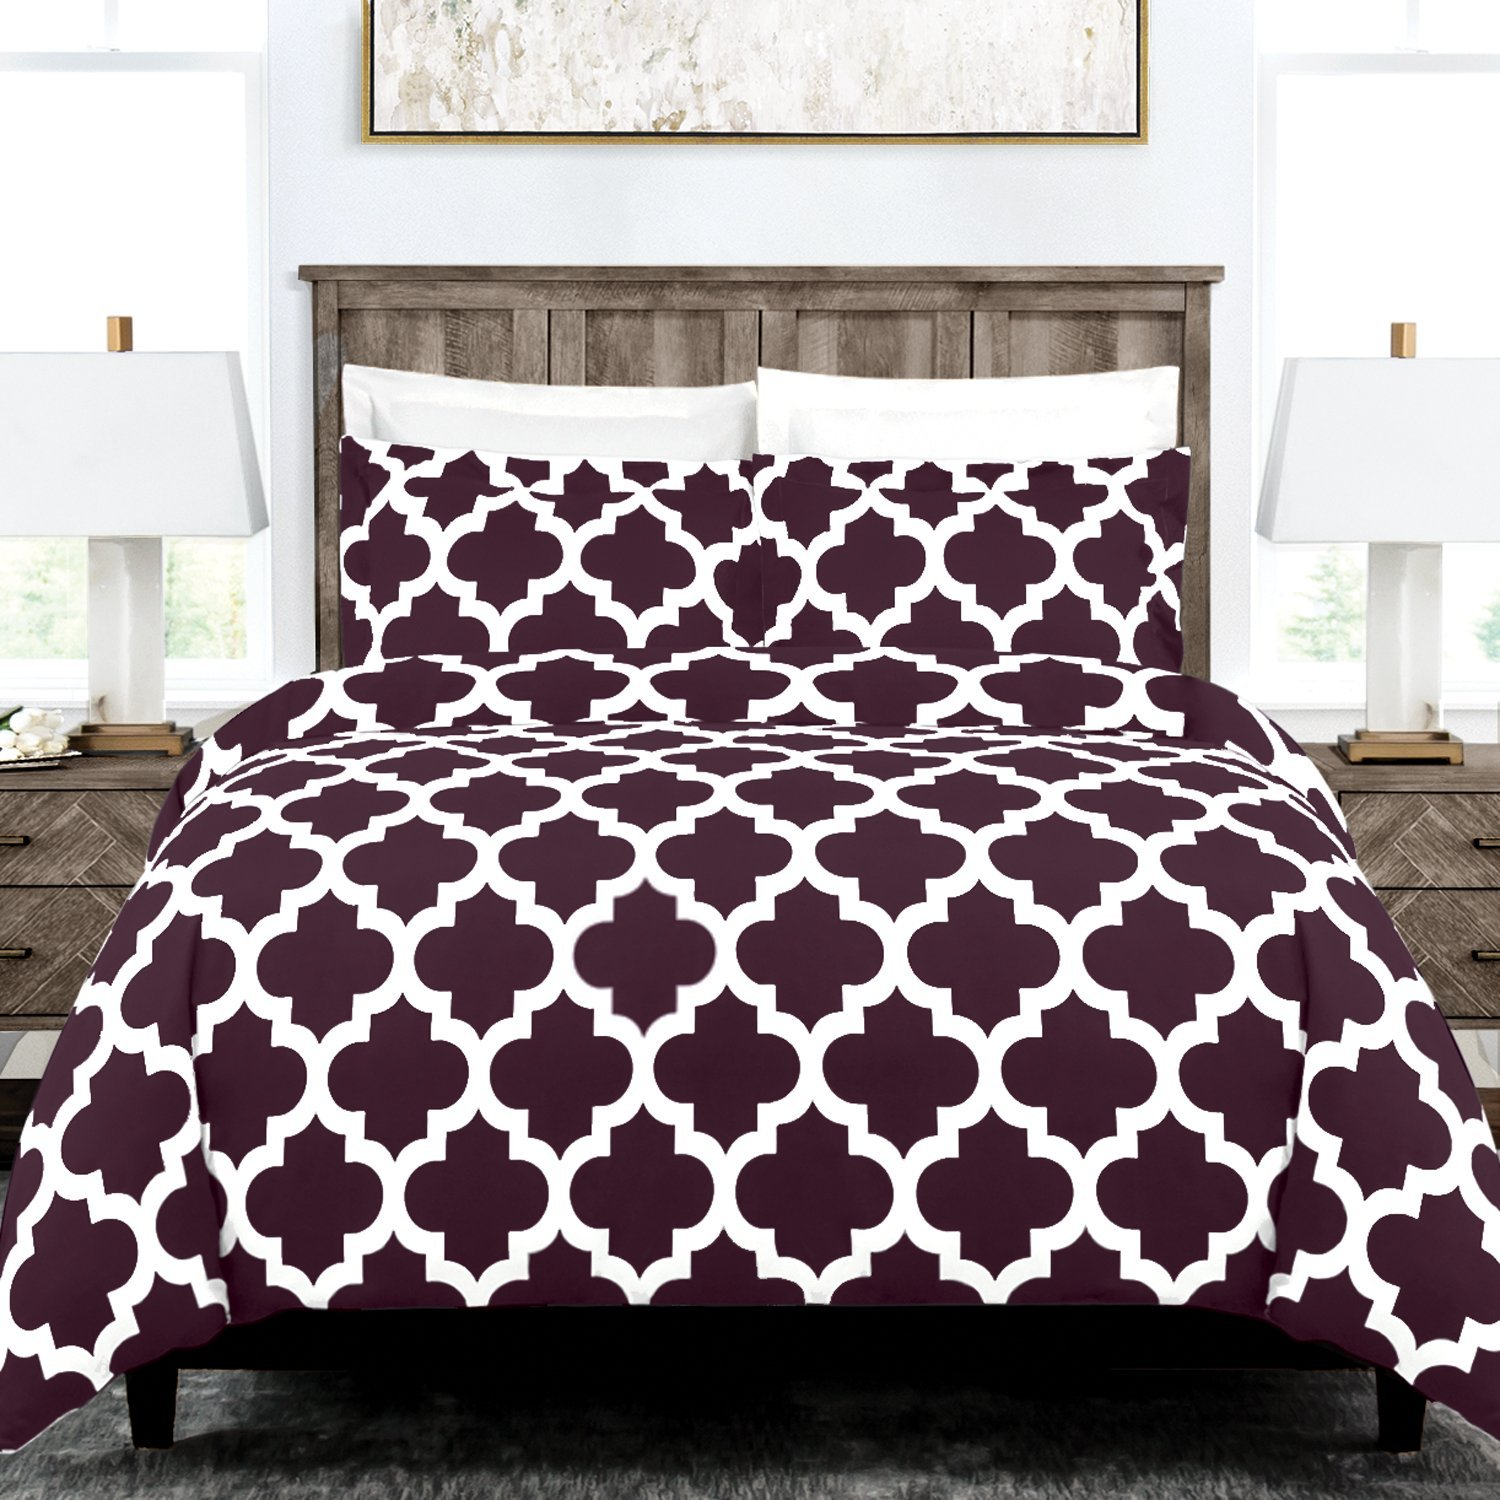 Egyptian Luxury Quatrefoil Duvet Cover Set - 3-Piece Ultra Soft Double Brushed Microfiber Printed Cover with Shams -King /Cal King - Purple/White